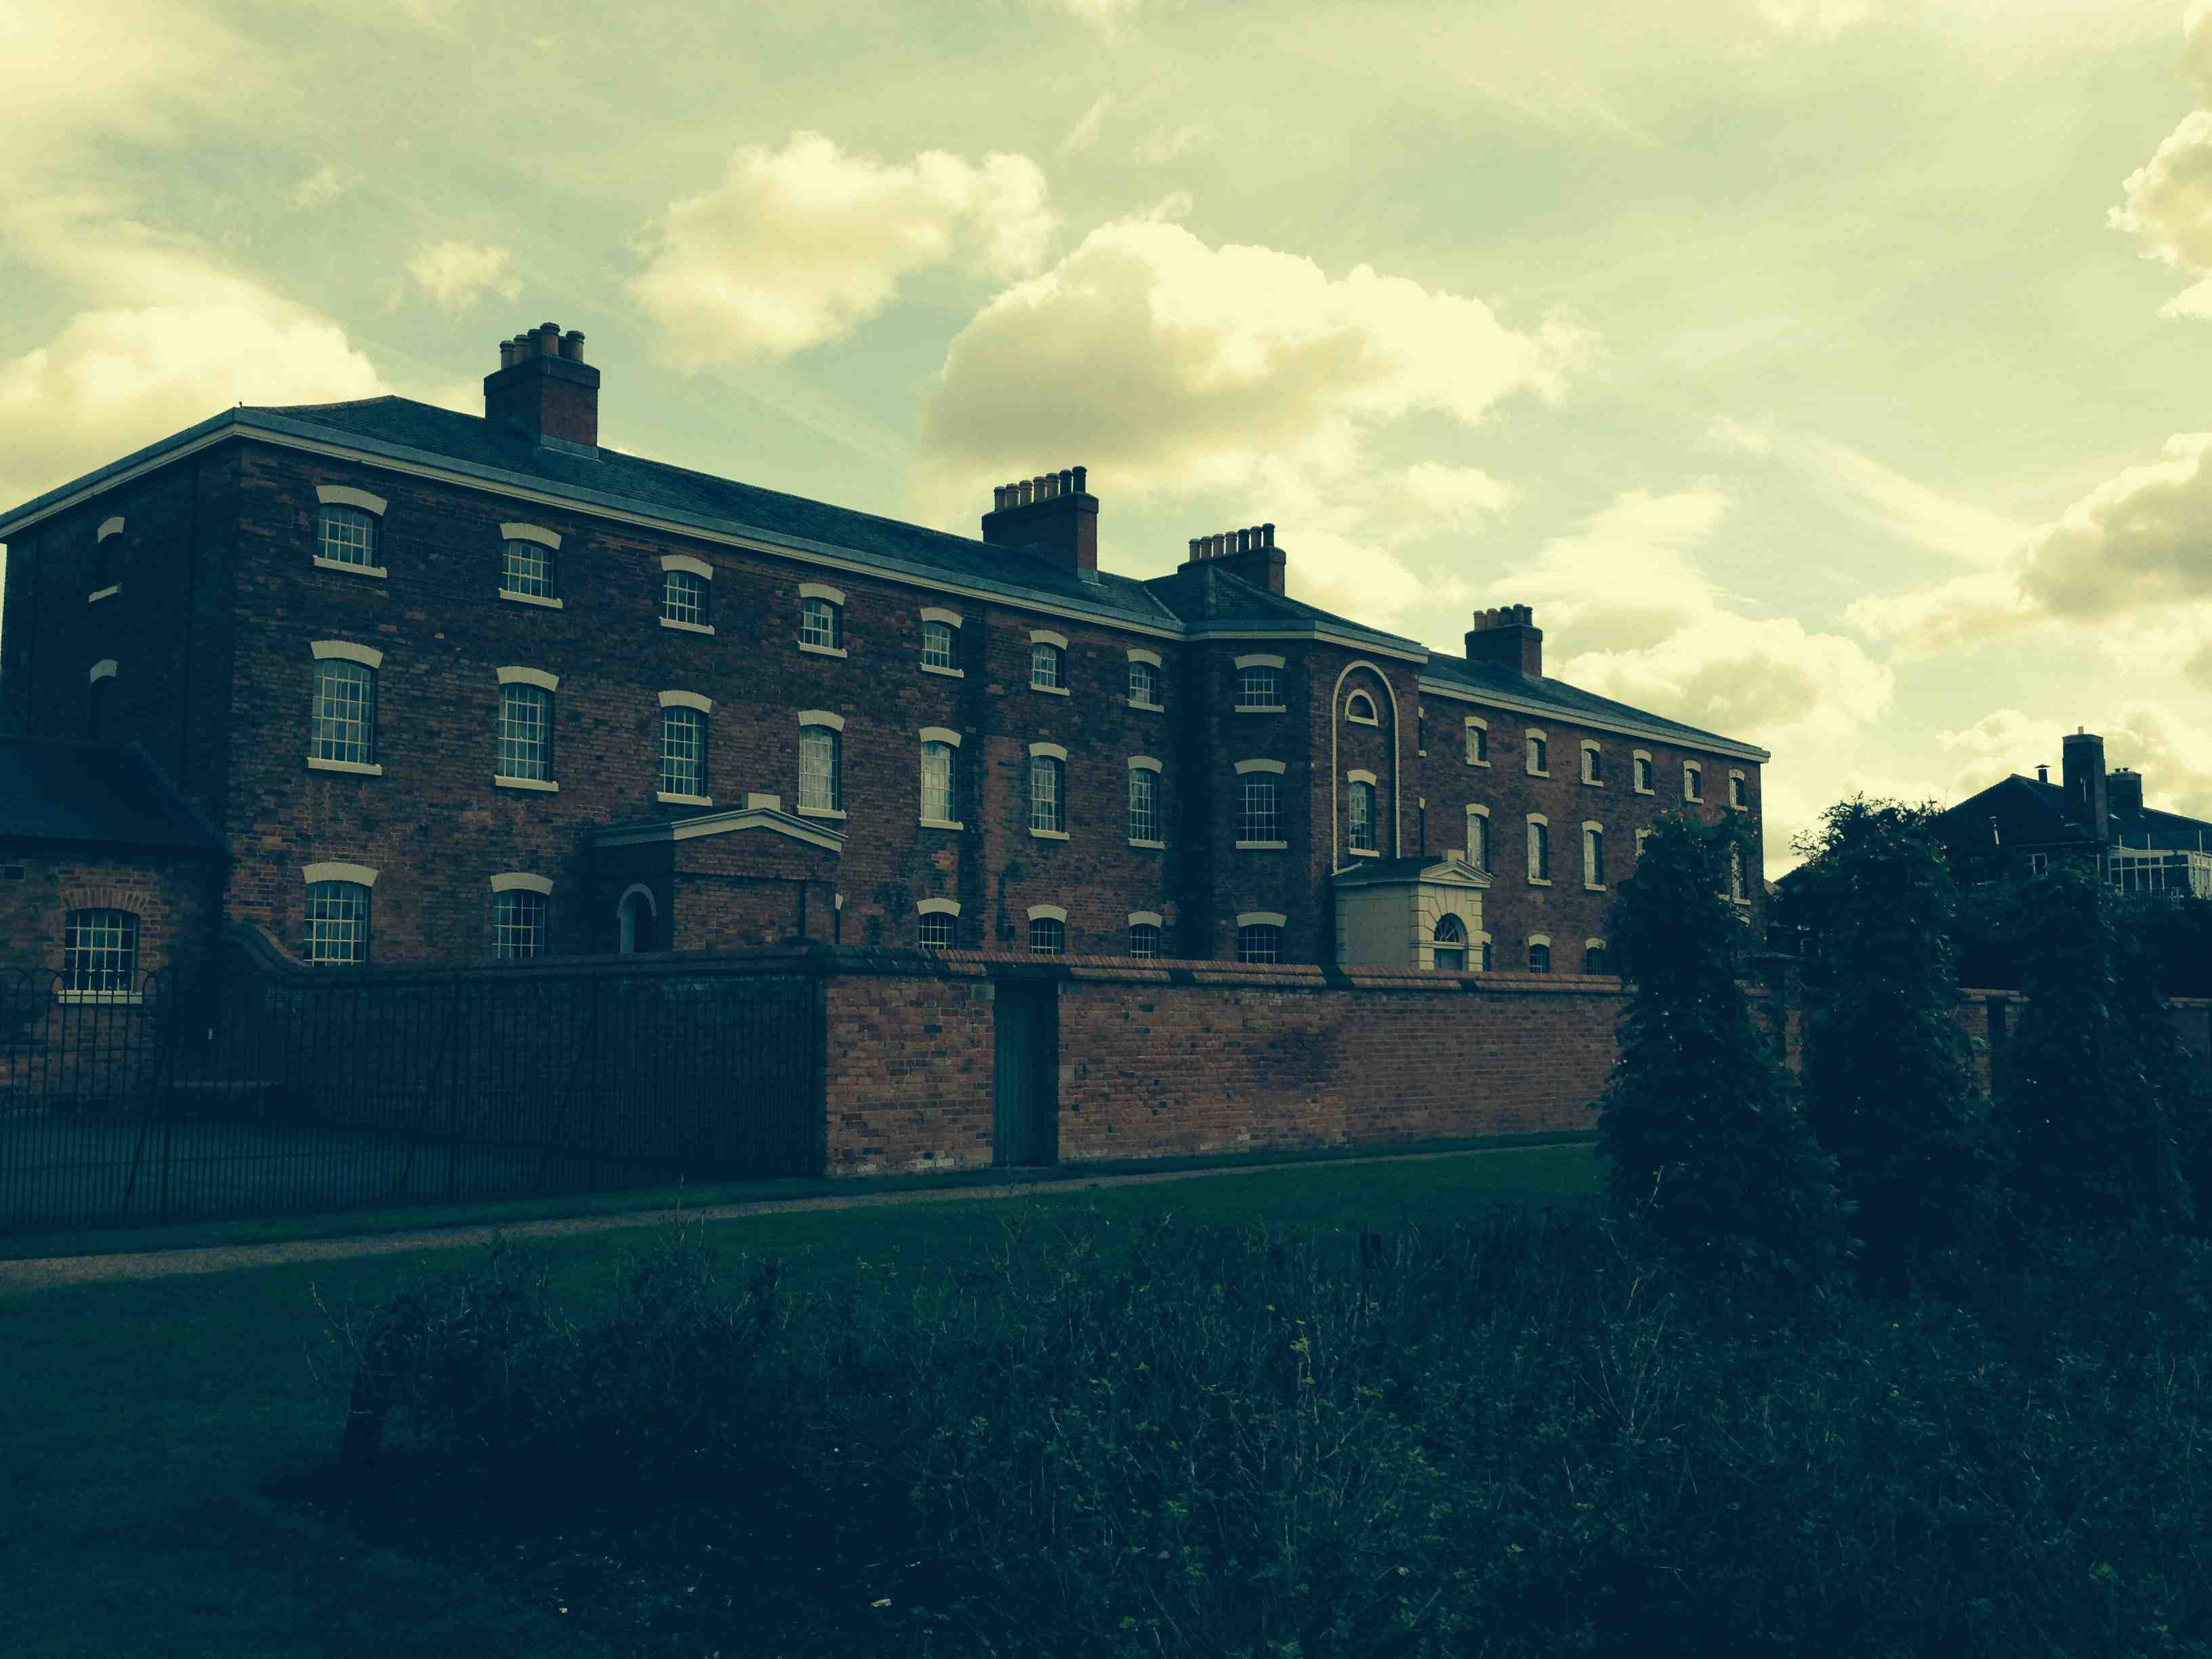 Pop up paupers, pathways and pauper mice at the Workhouse